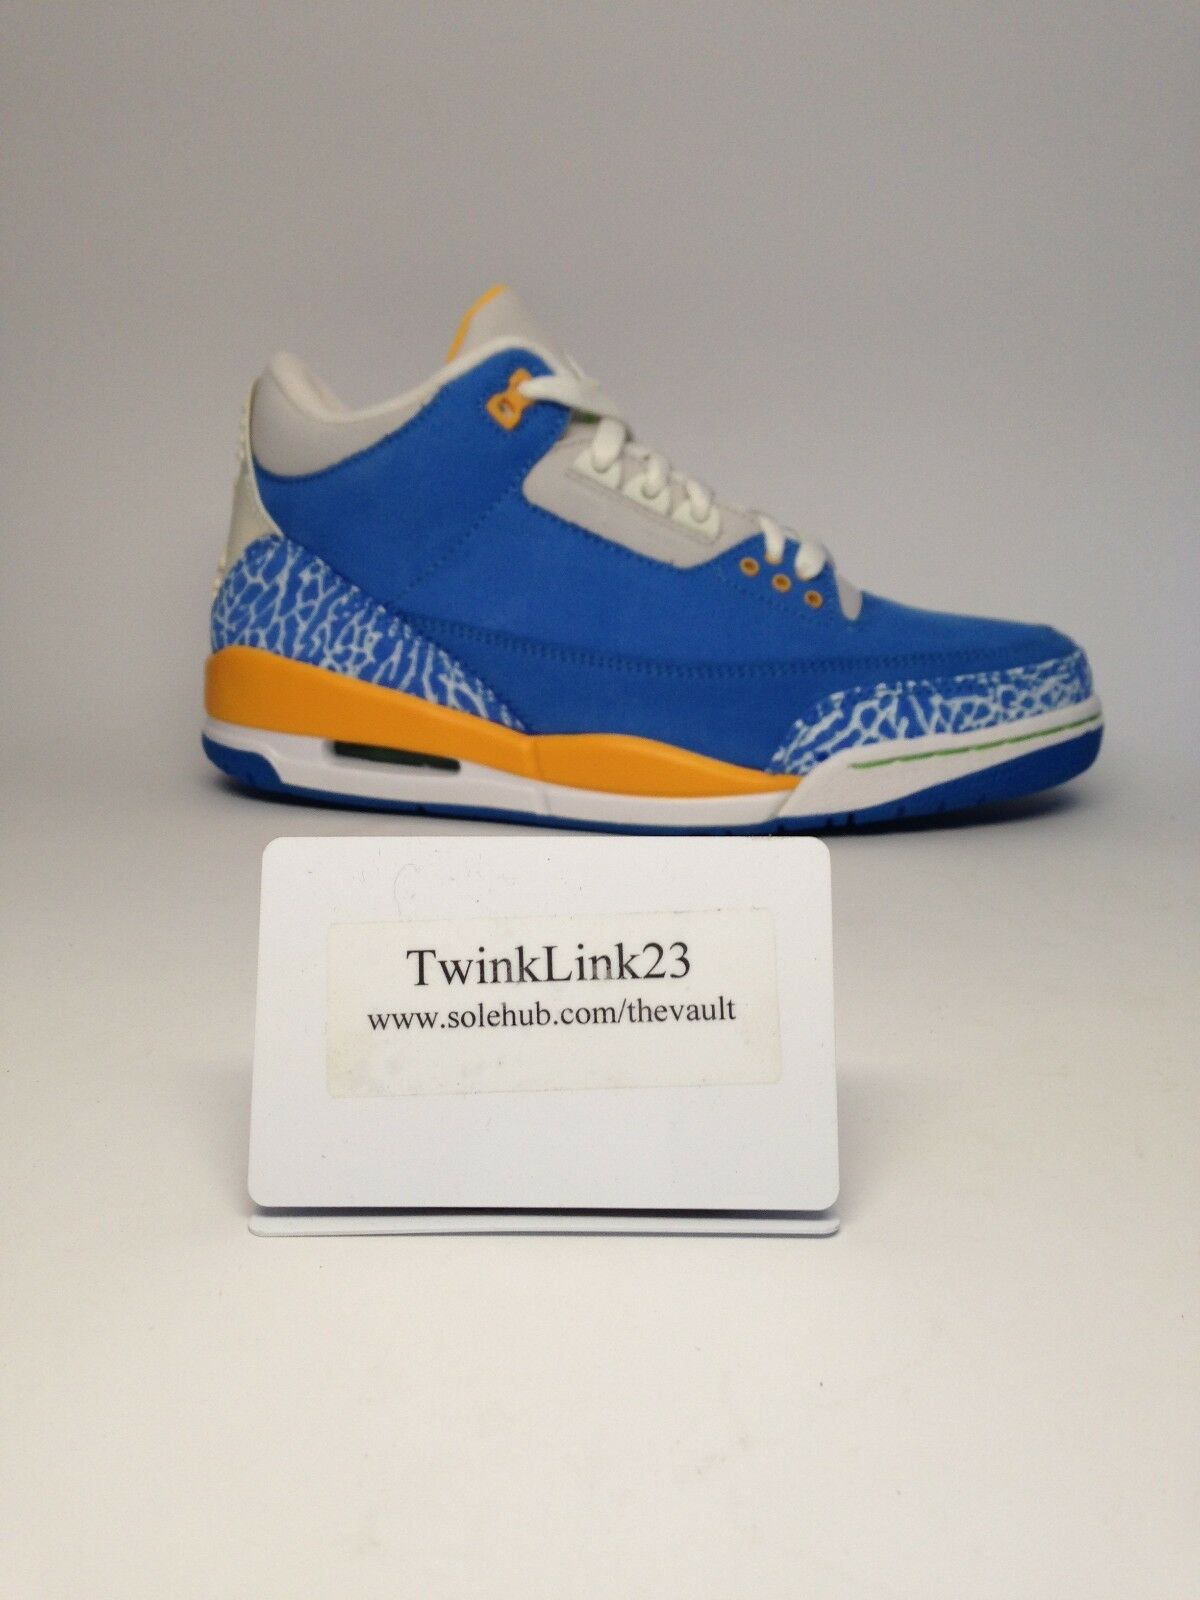 official photos 7d94f f8d14 ... top quality air jordan 3 retro ls do the right thing dtrt 315297 471  lovely 8c77e